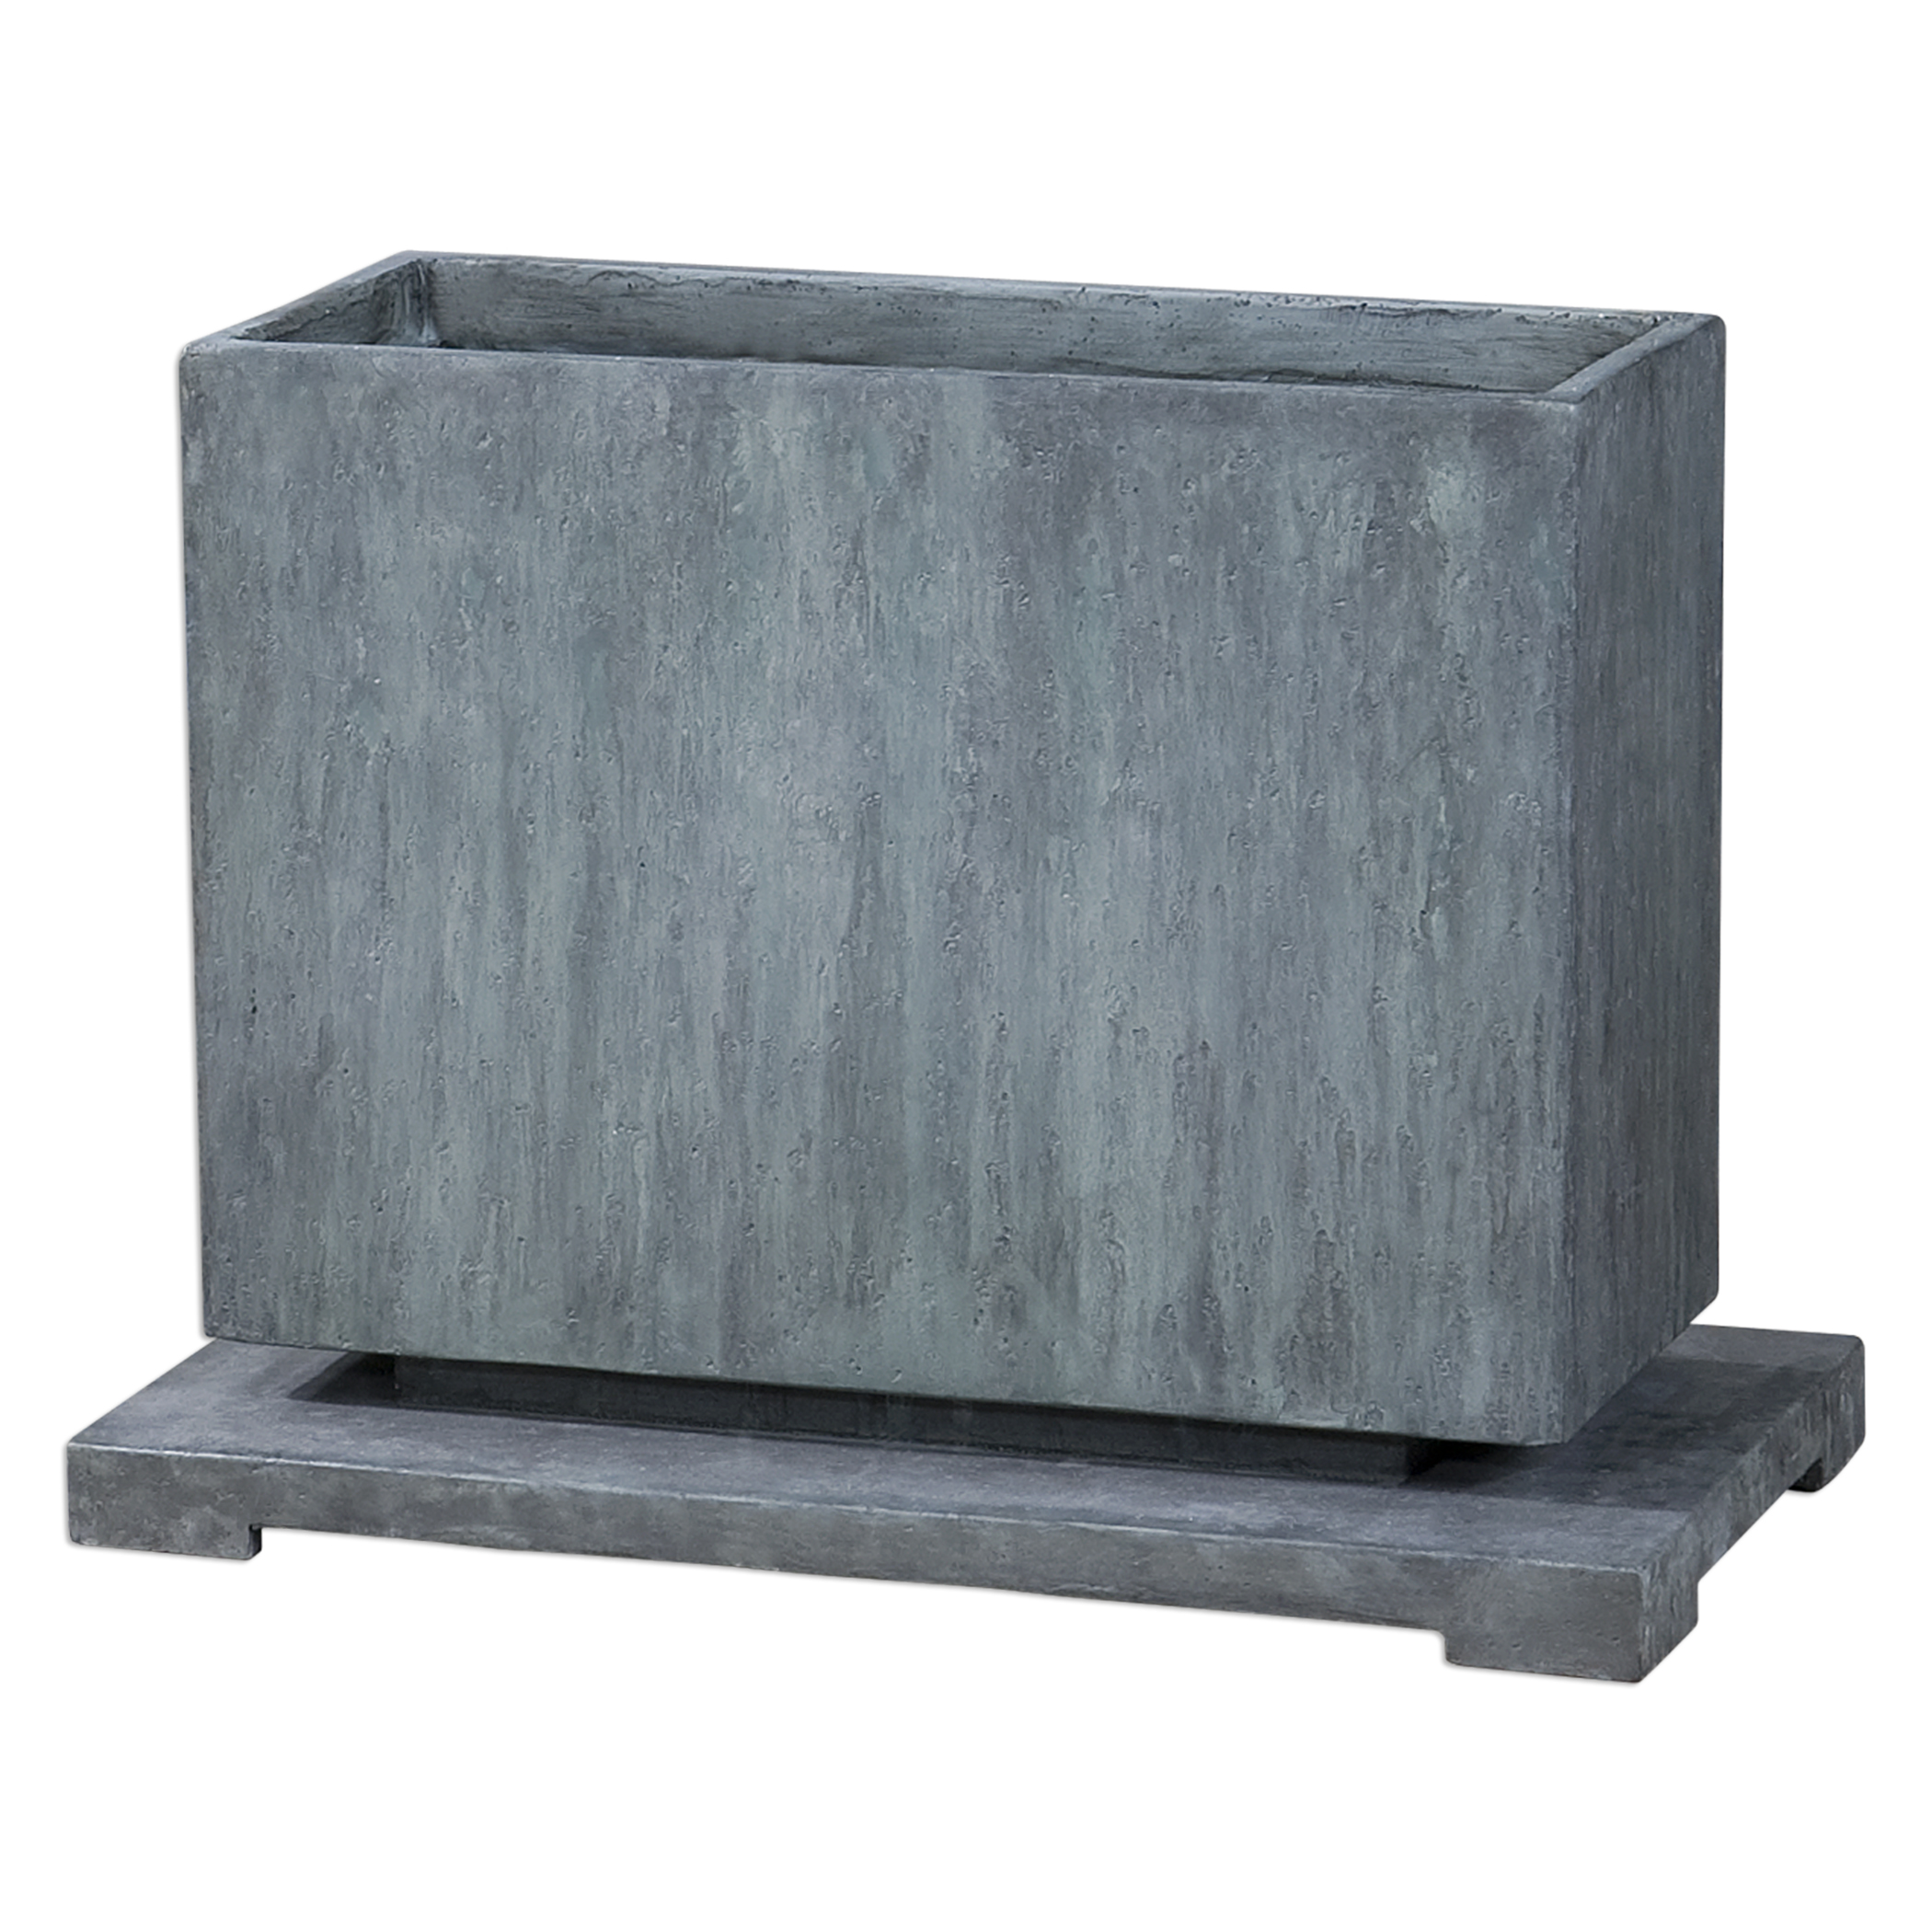 Uttermost Accessories Vito Slate Blue Planter - Item Number: 20070